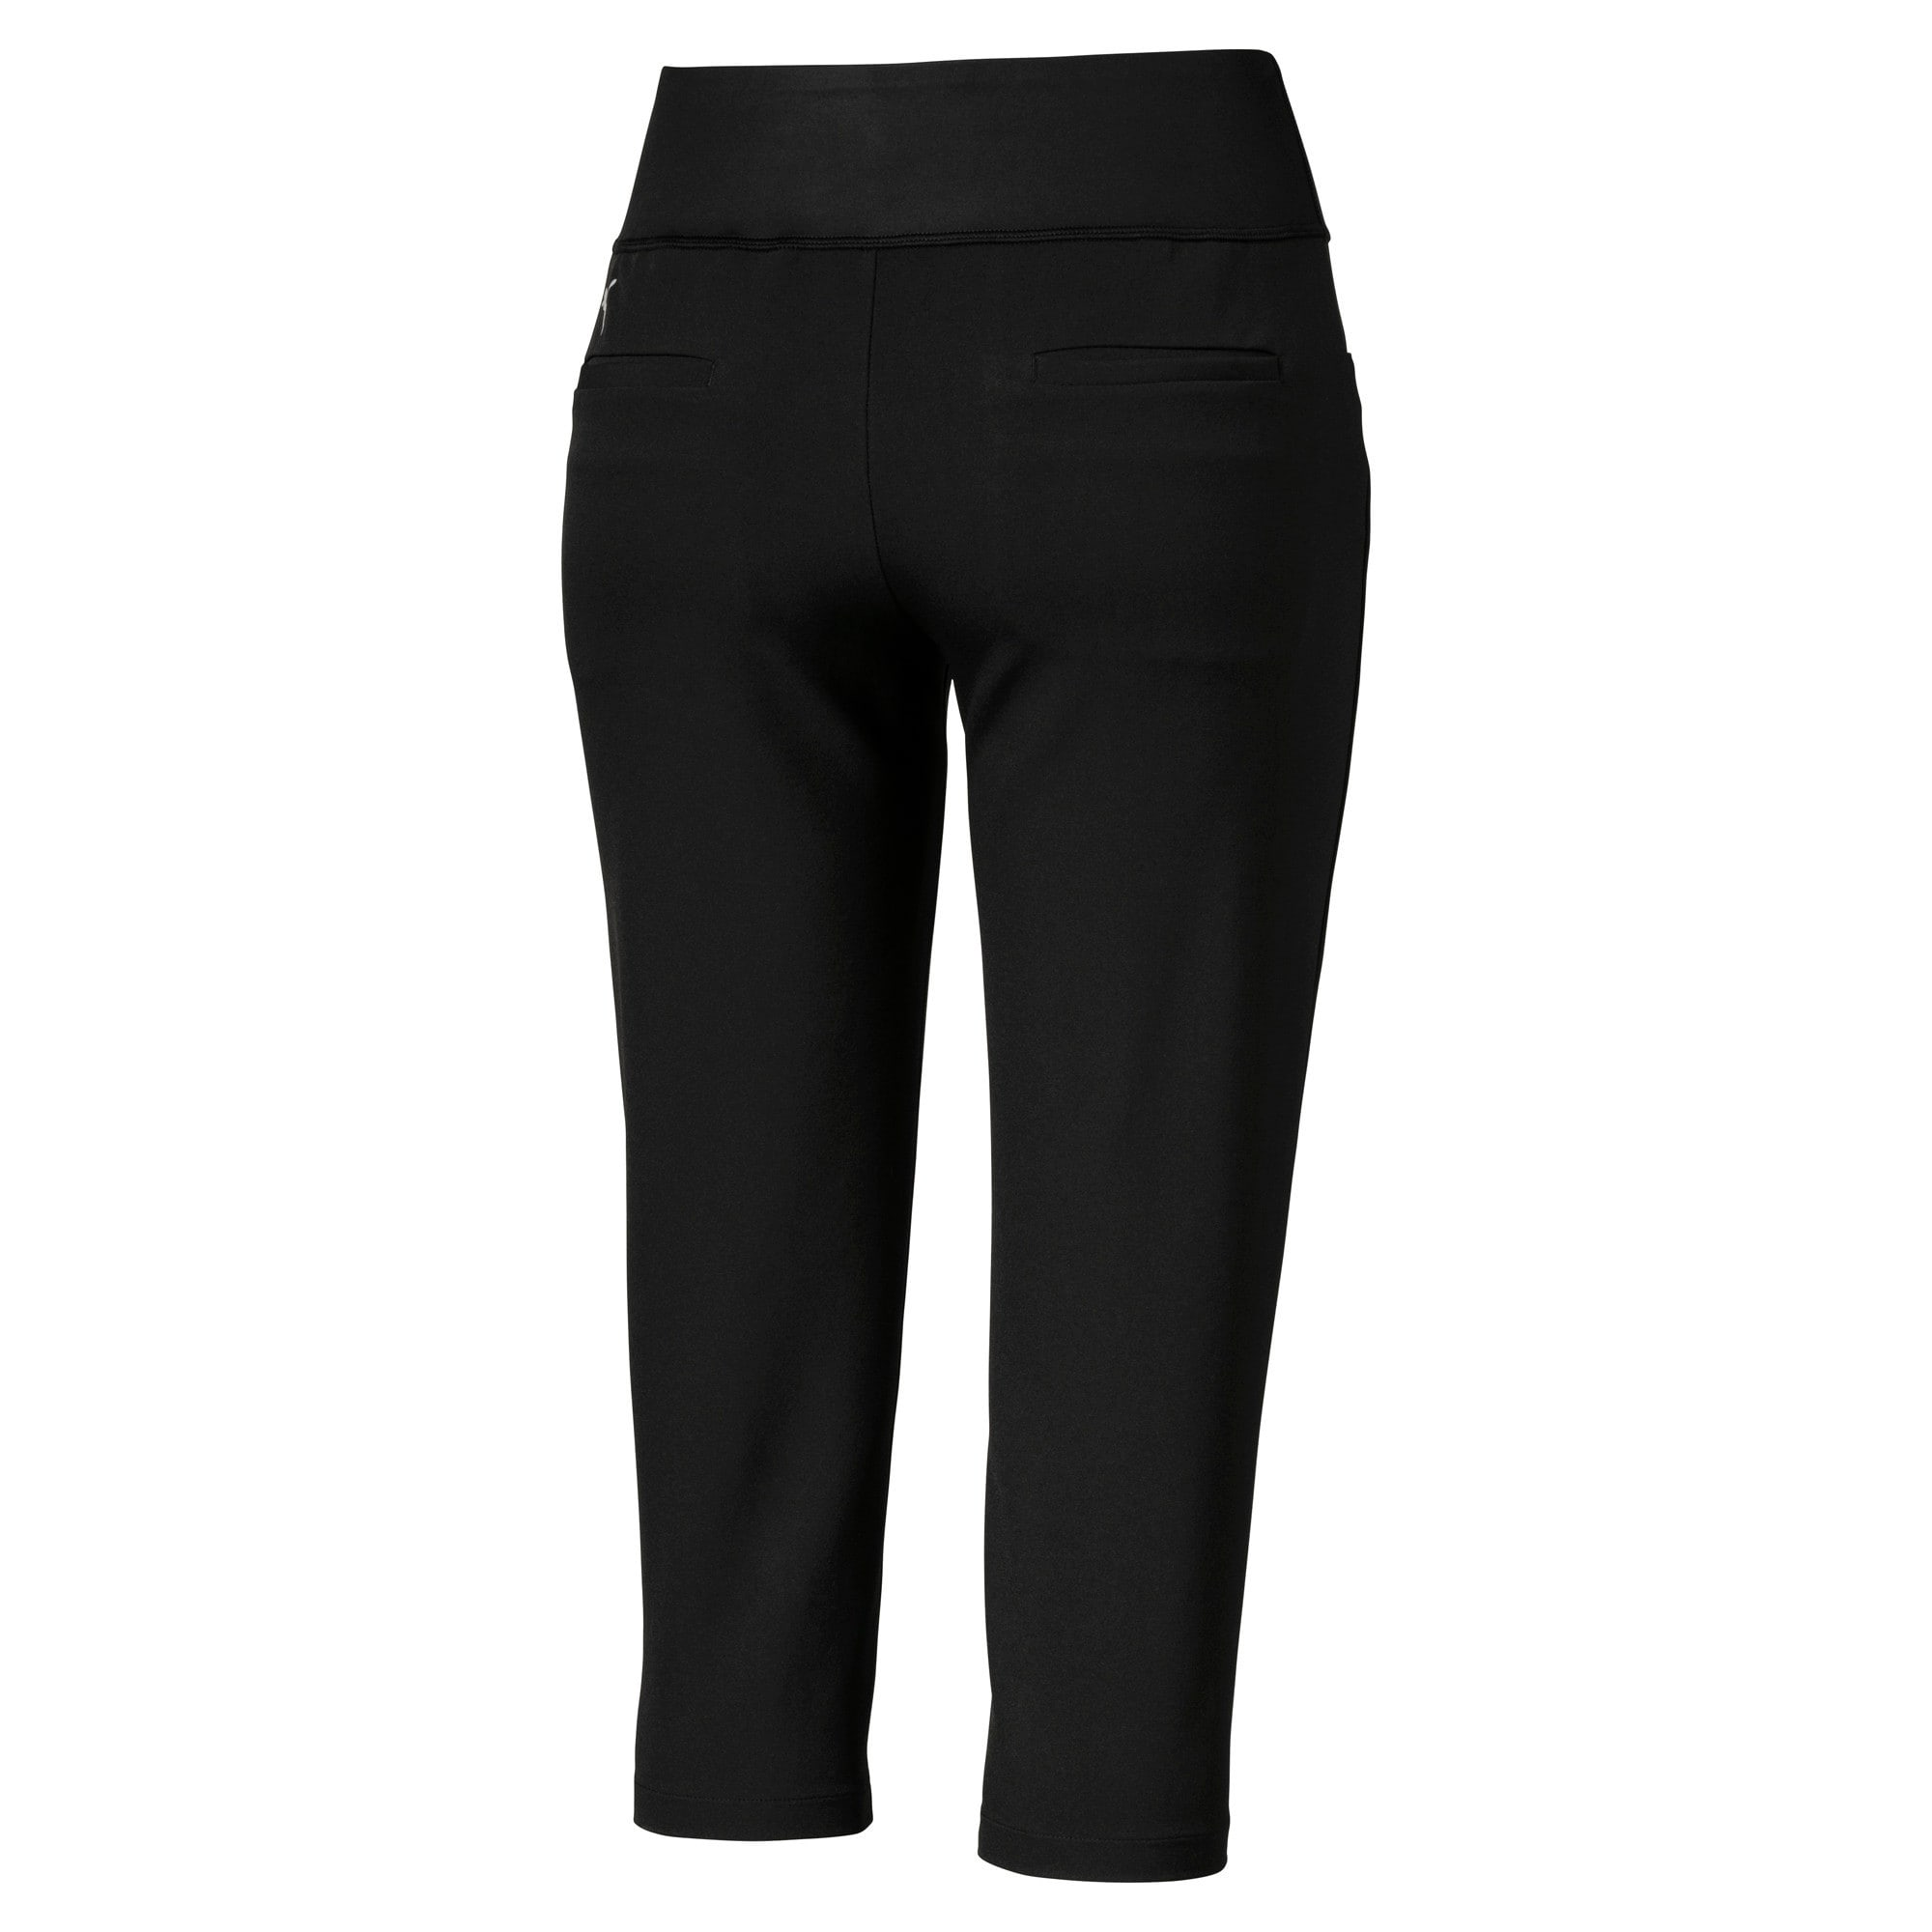 Thumbnail 2 of Golf Damen PWRSHAPE Caprihose, Puma Black, medium